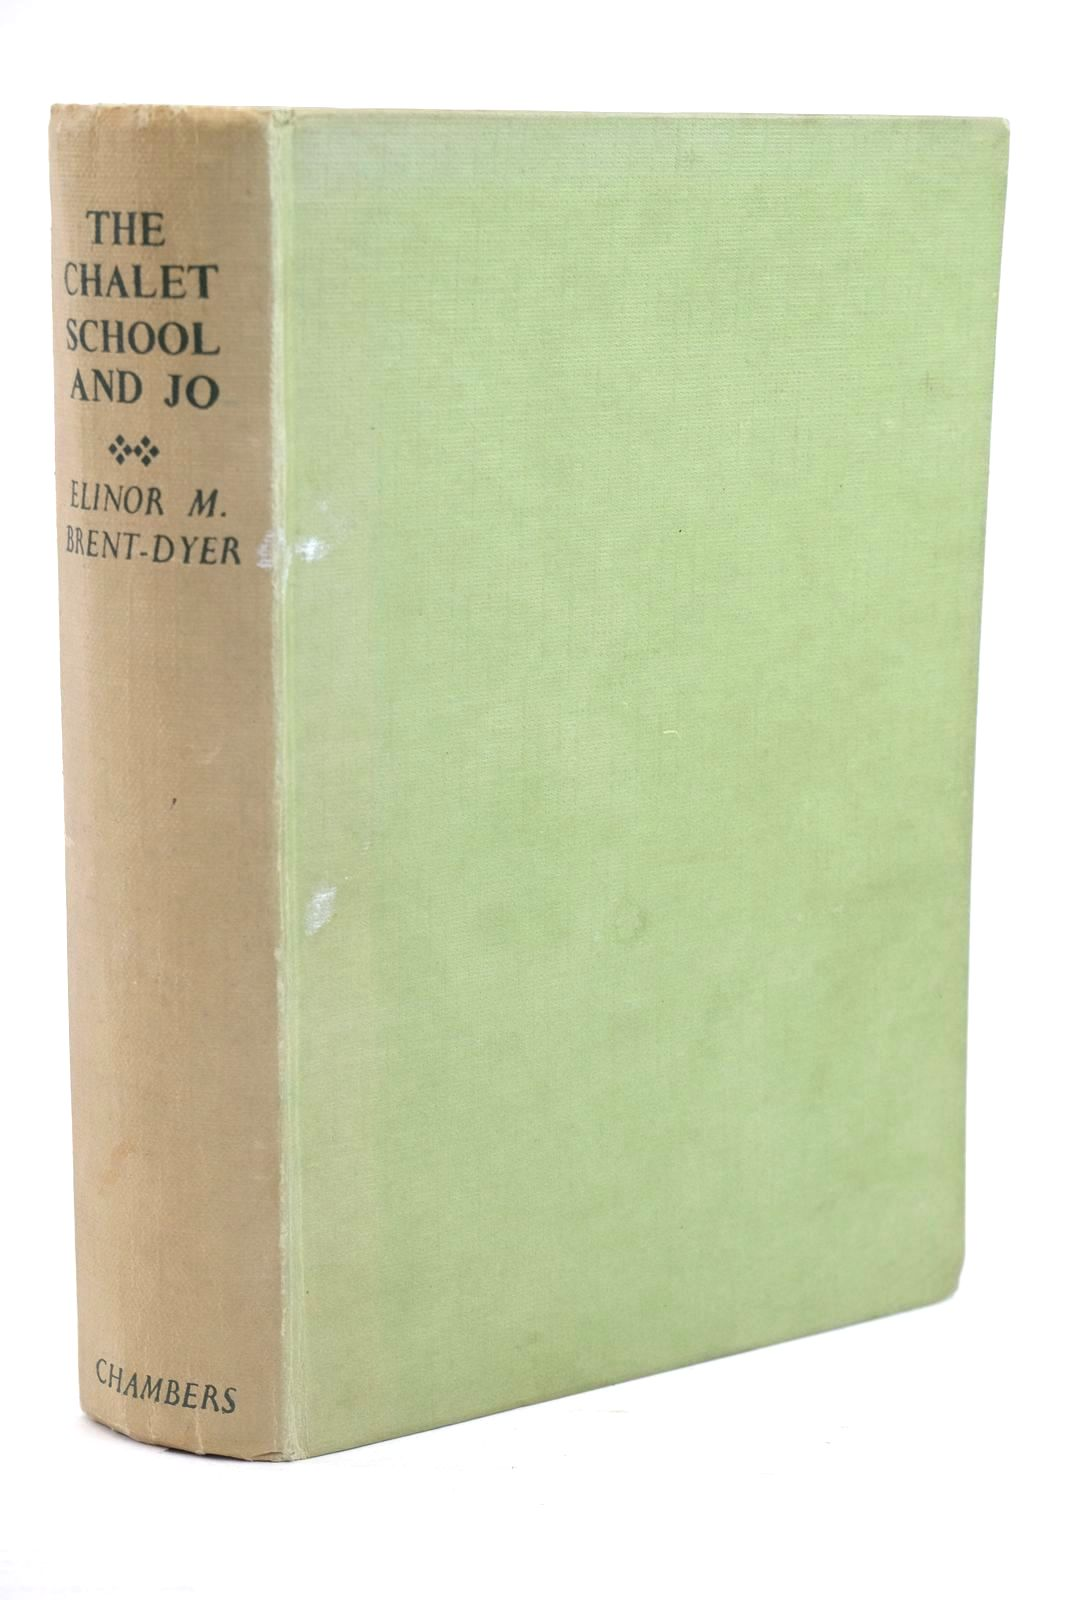 Photo of THE CHALET SCHOOL AND JO written by Brent-Dyer, Elinor M. published by W. & R. Chambers Limited (STOCK CODE: 1320037)  for sale by Stella & Rose's Books